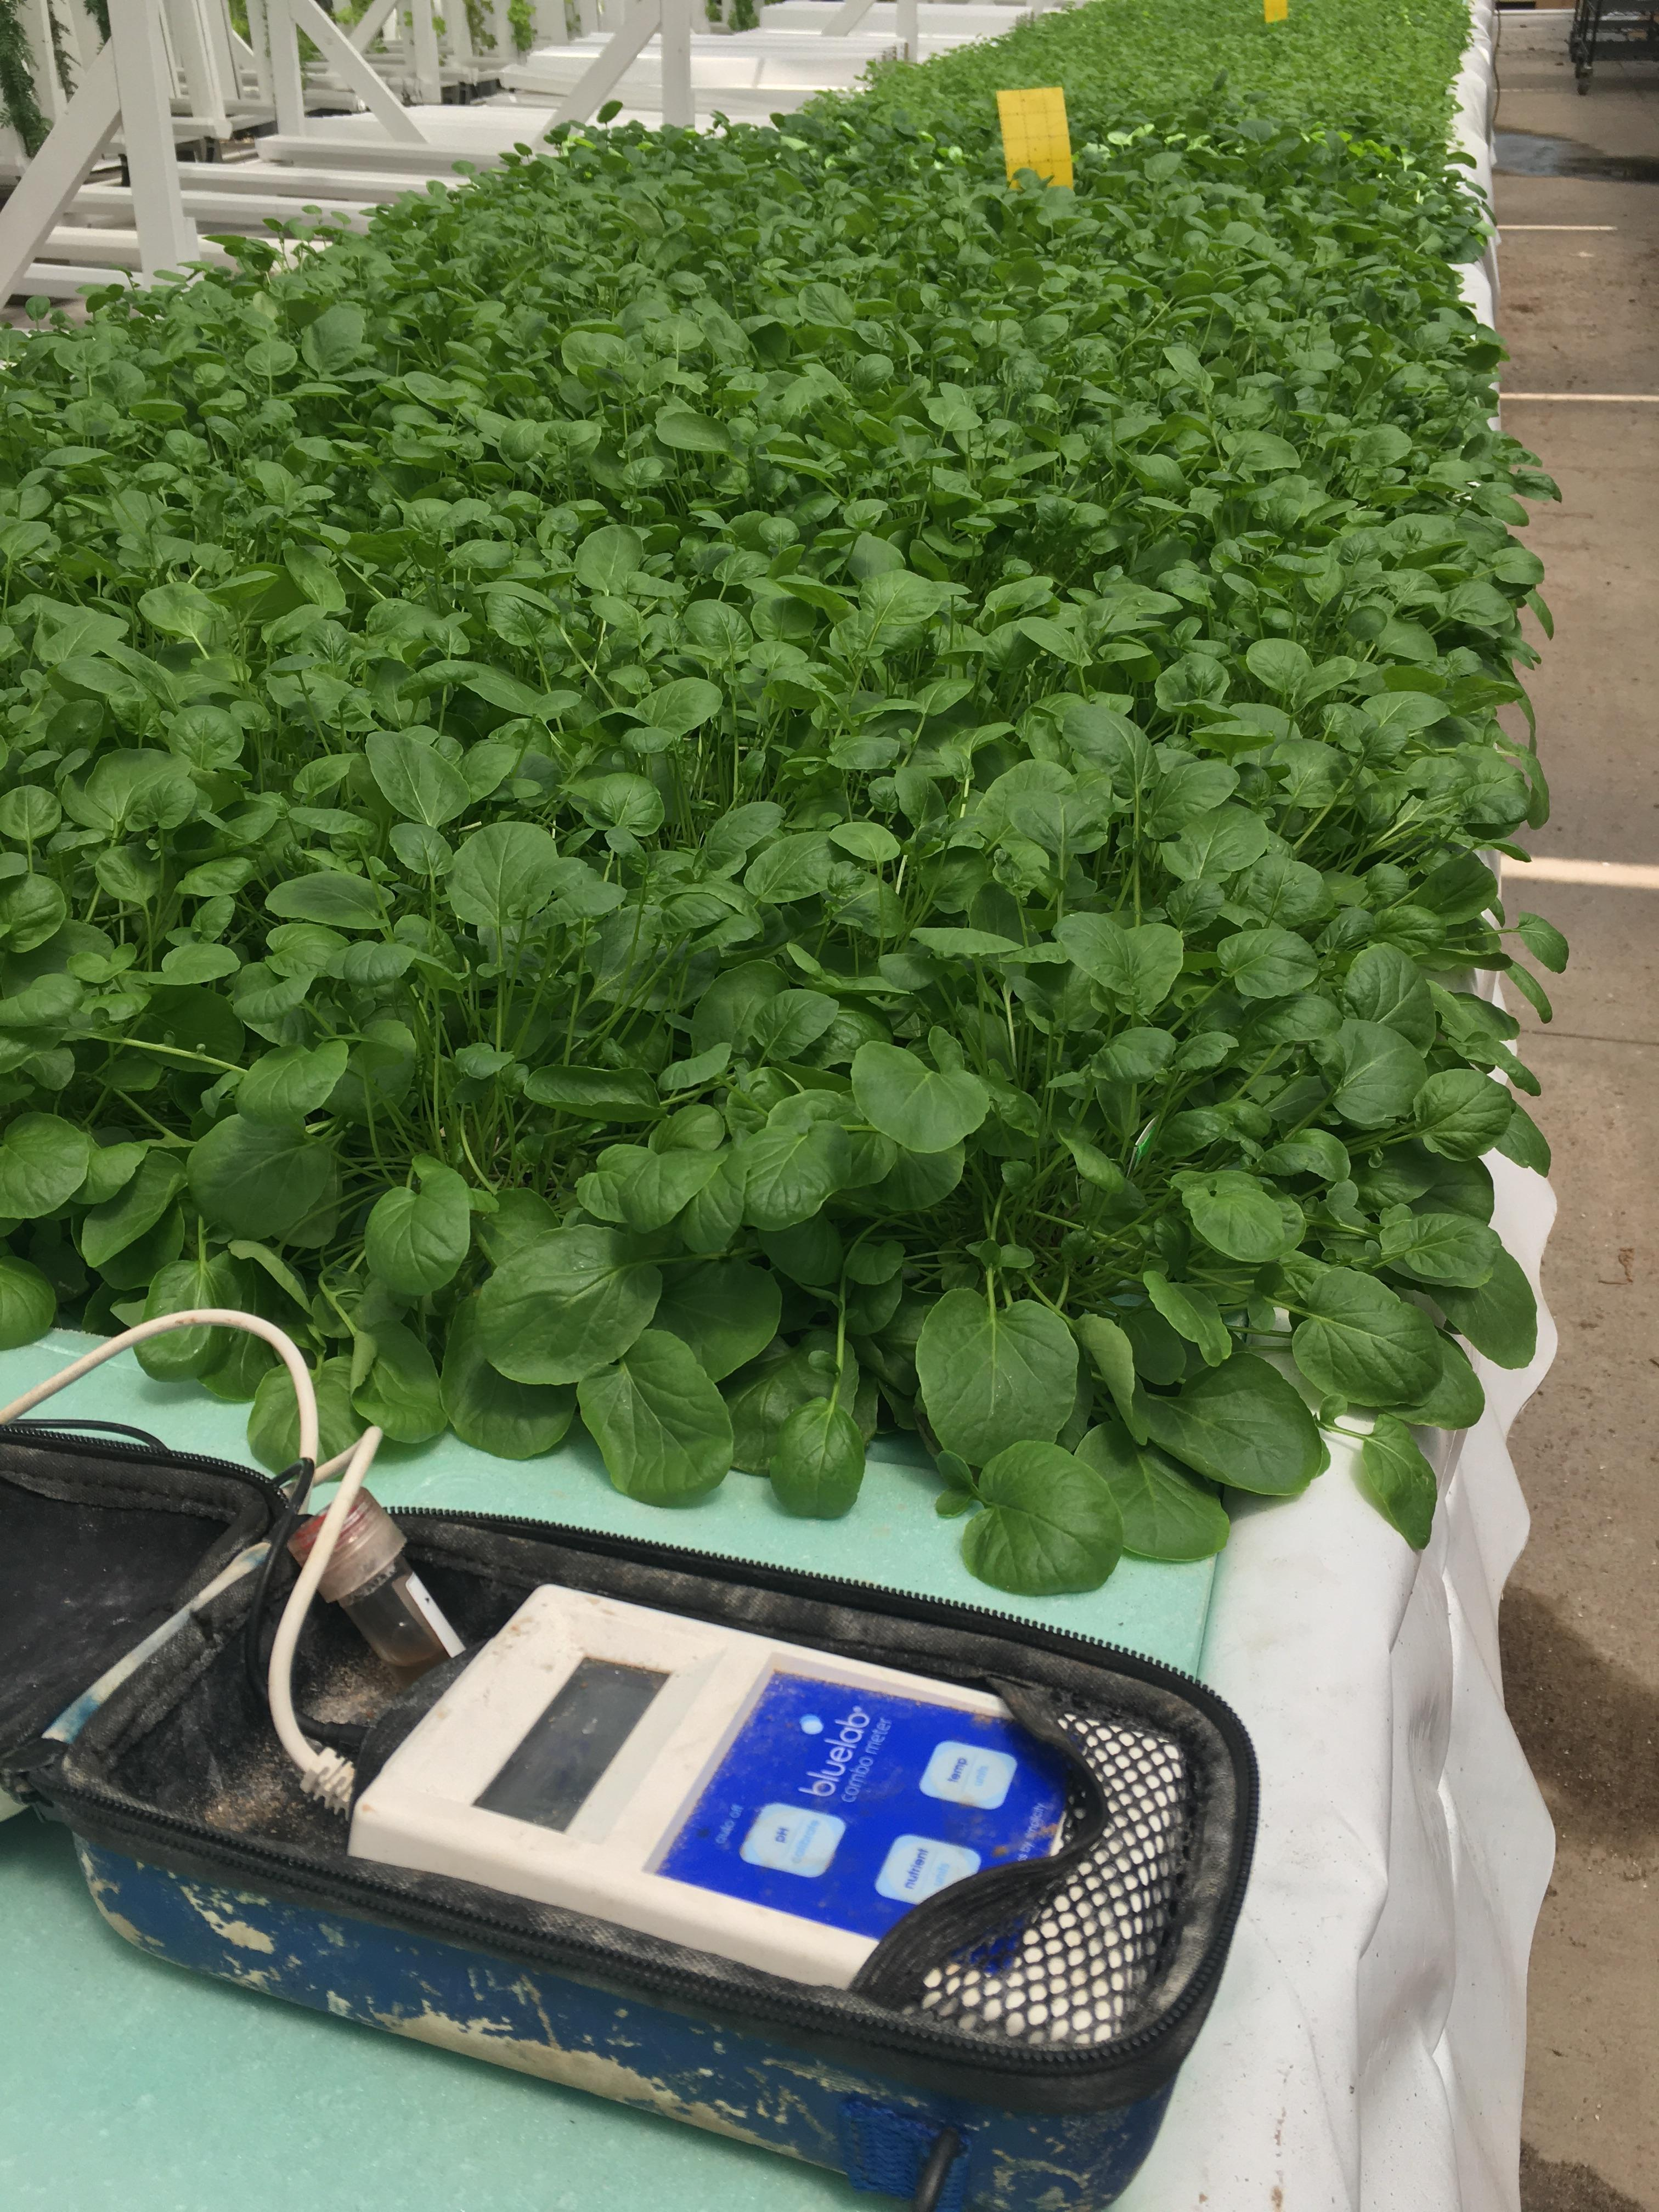 Bluelab Combo Meter in use at CRG Grow